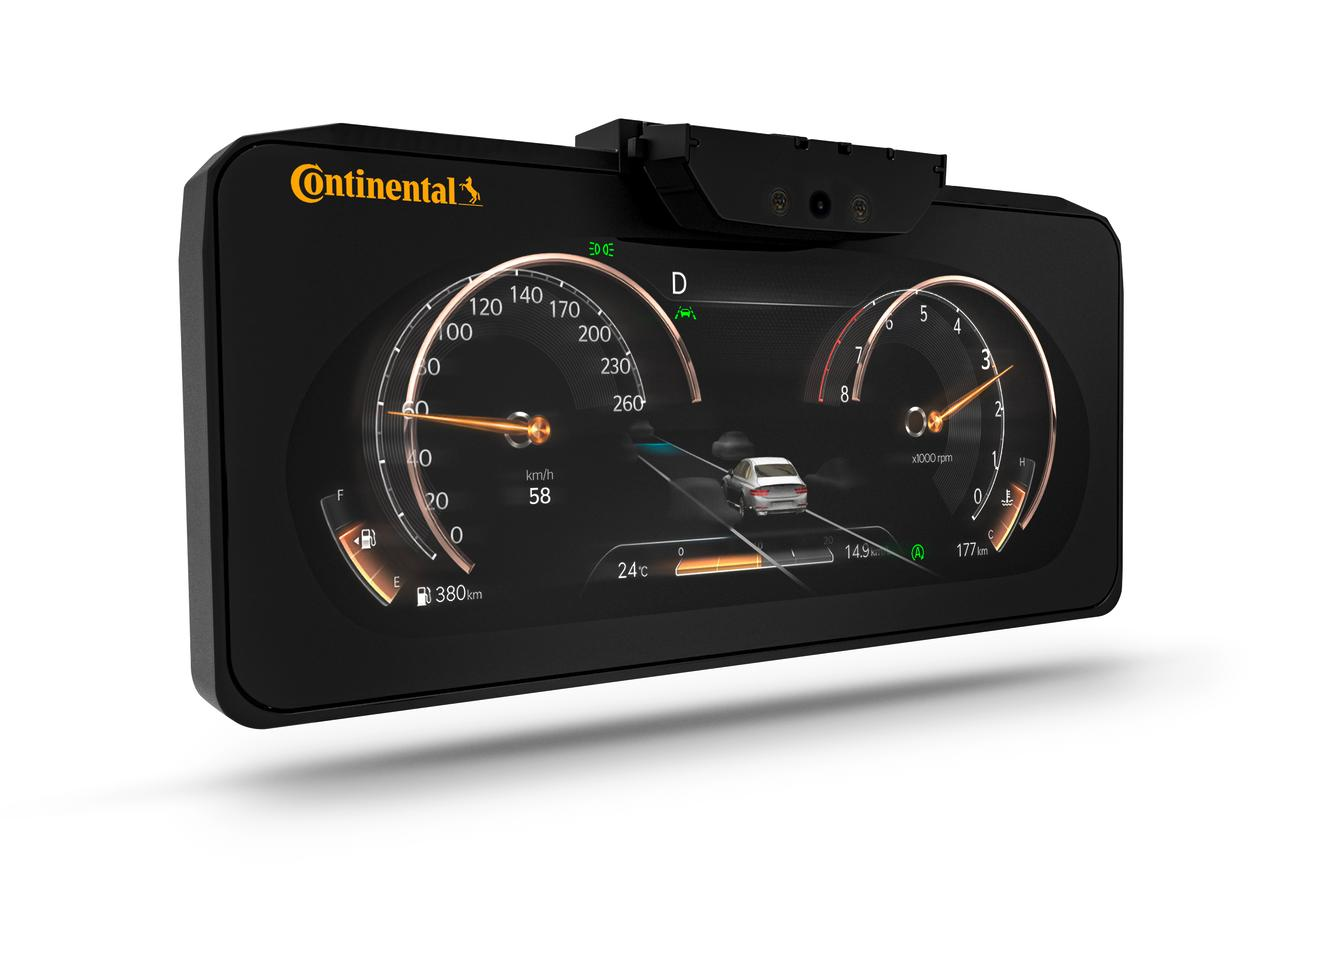 Continental's no-glasses-required 3D dash is coming to the Genesis GV80